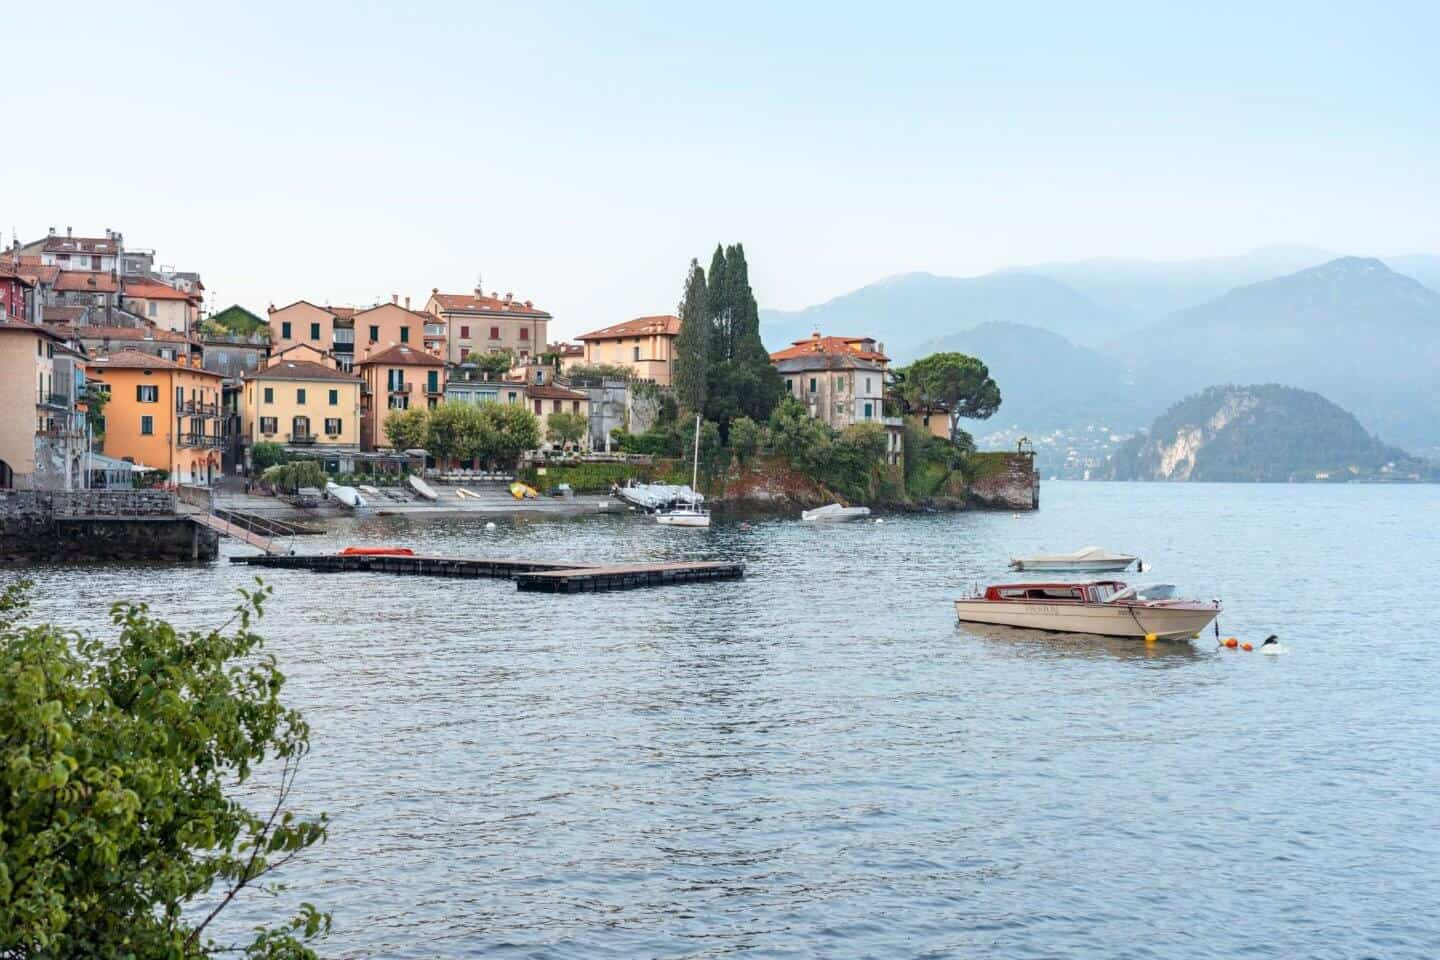 View from passeggiata degli Innamorati (lovers walk) in Varenna, Lake Como - the first sight on a day trip to Lake Como from Milan